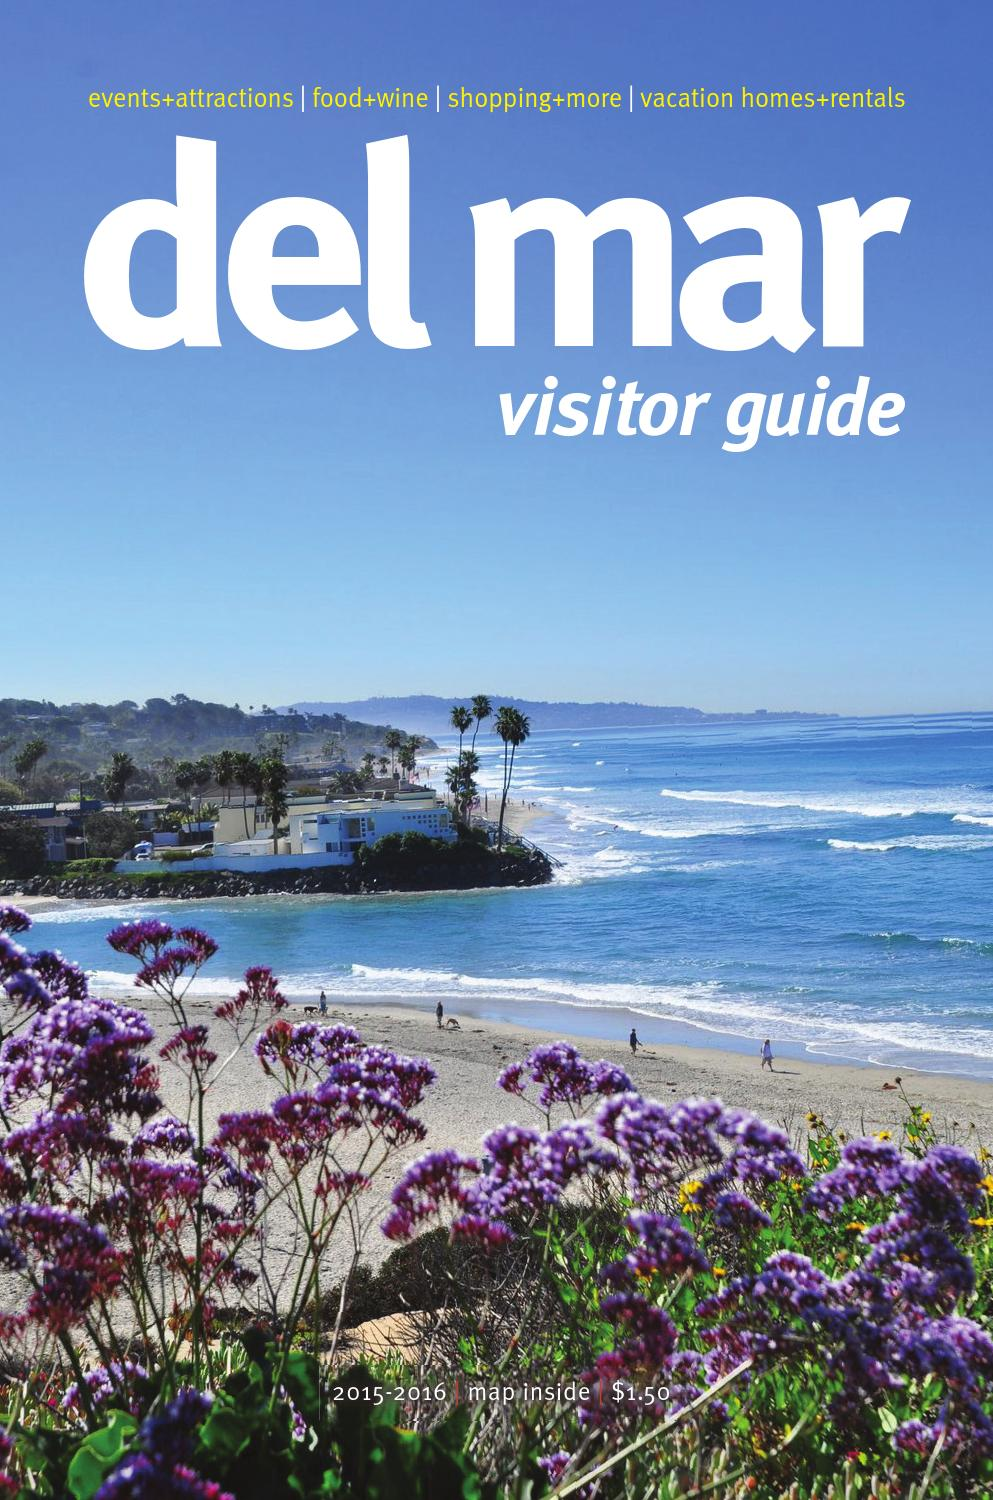 Del mar visitors guide 2015 by MainStreet Media - issuu